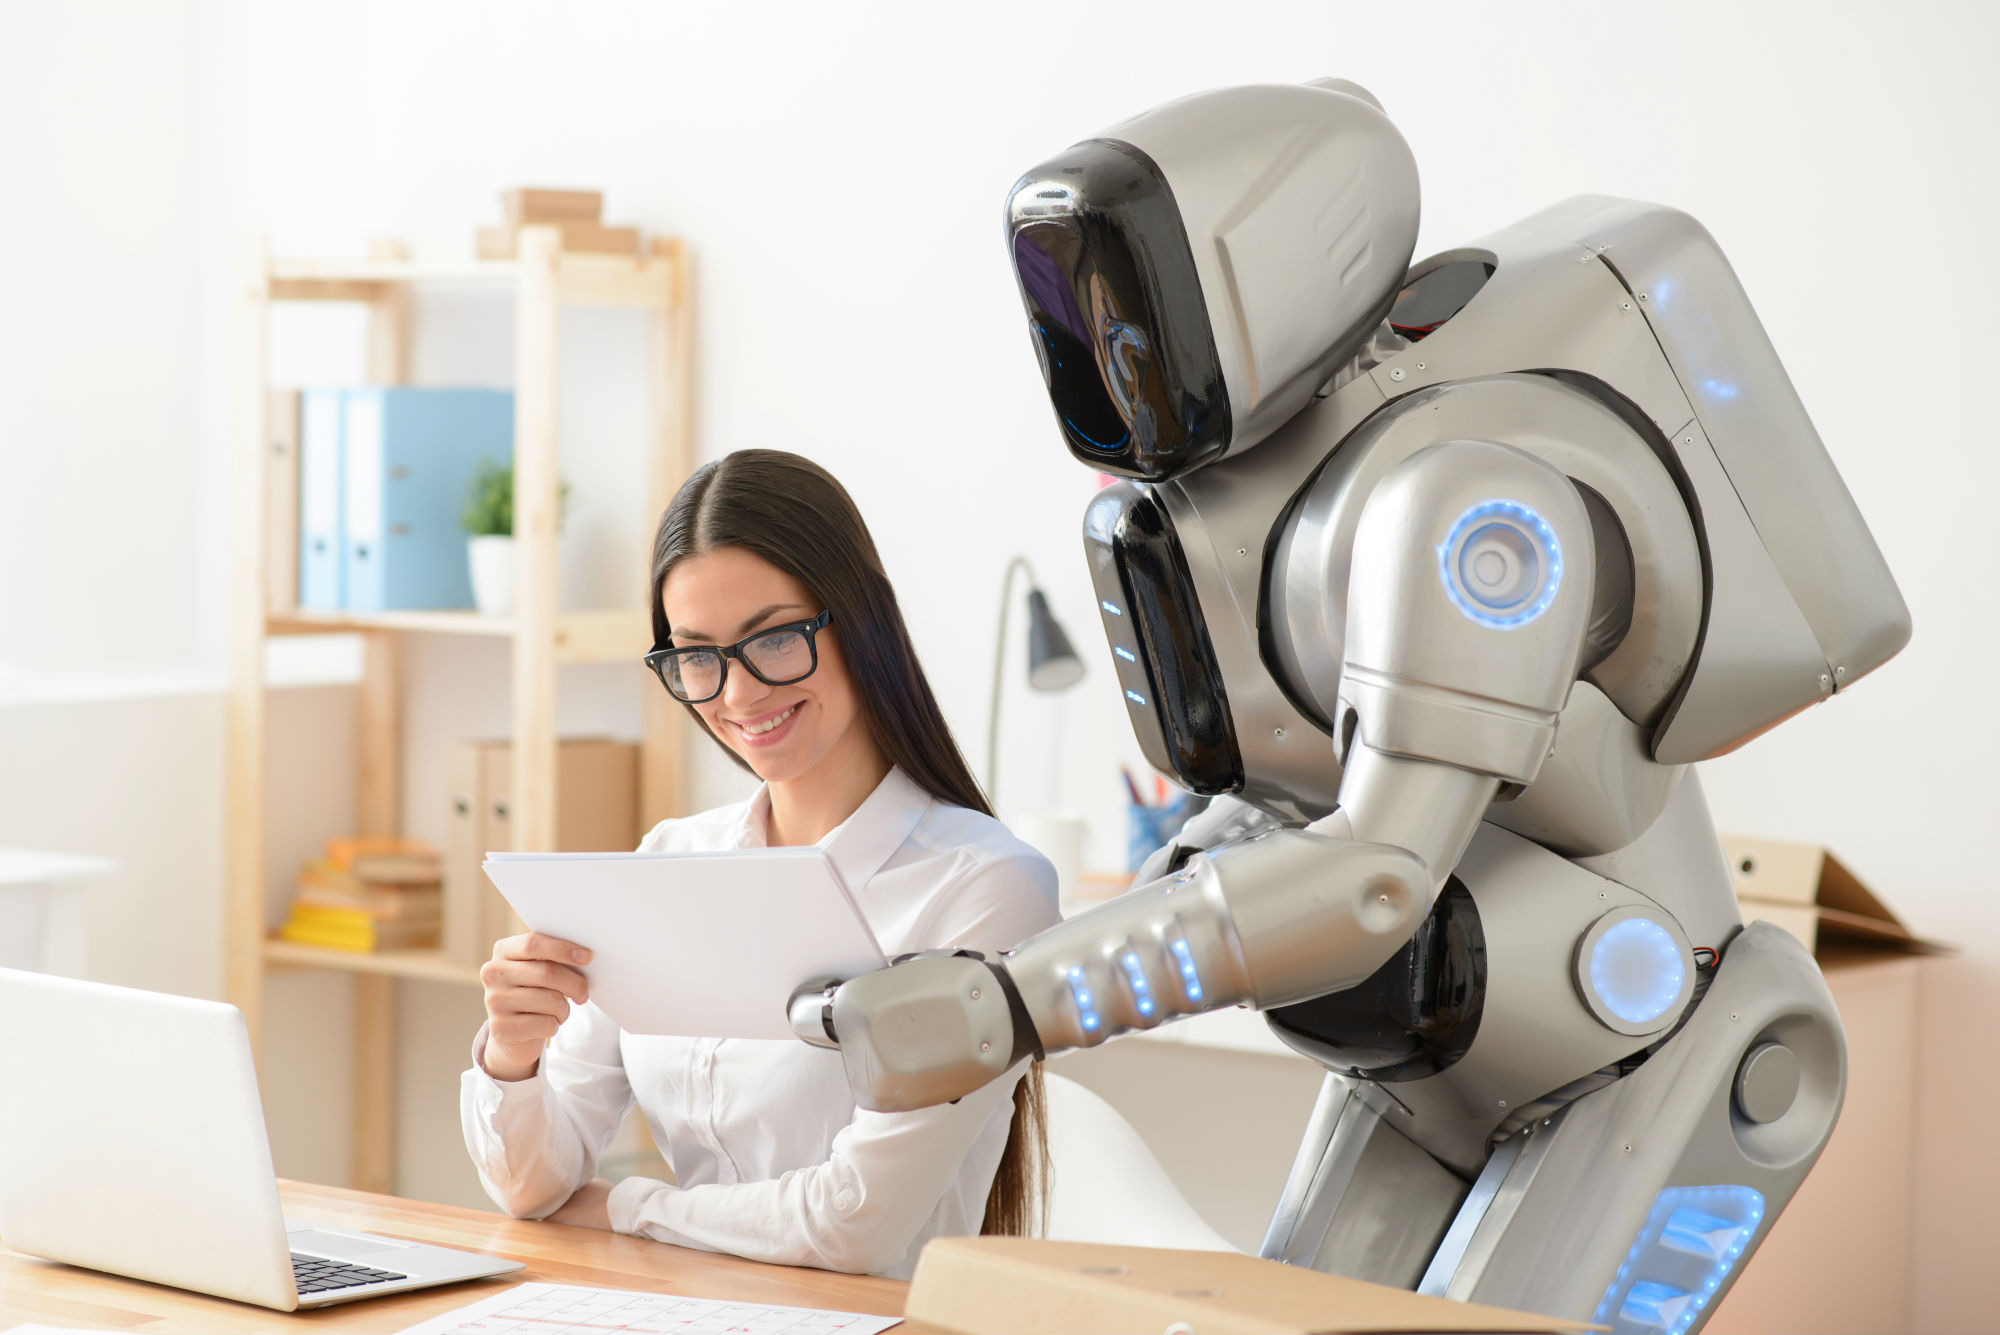 Woman working with a robot